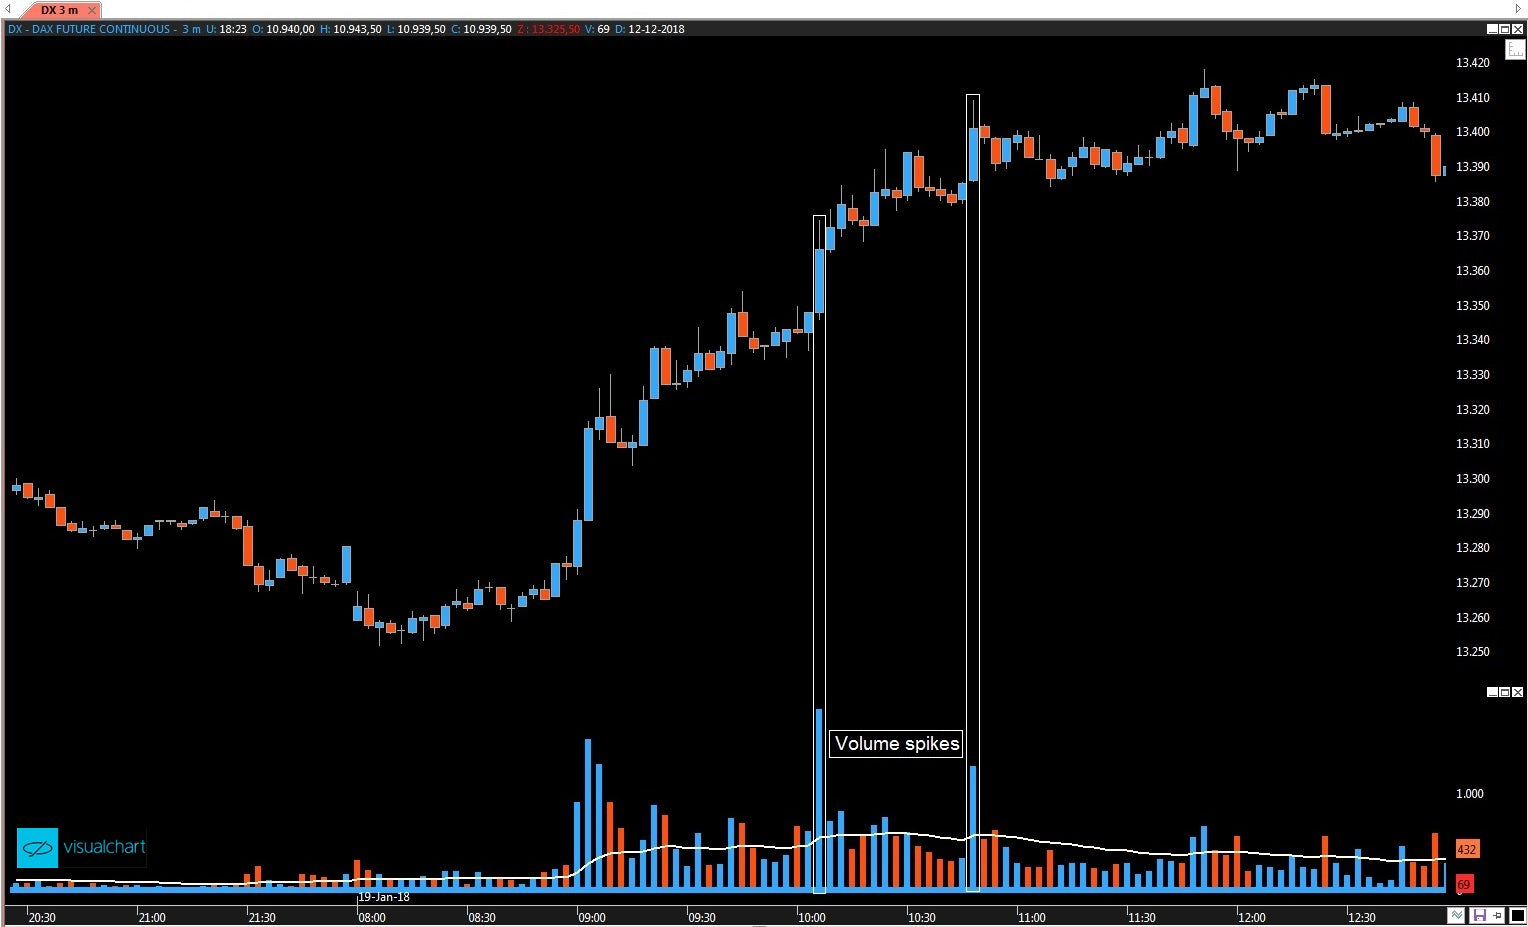 Intraday Exit Volume Spike